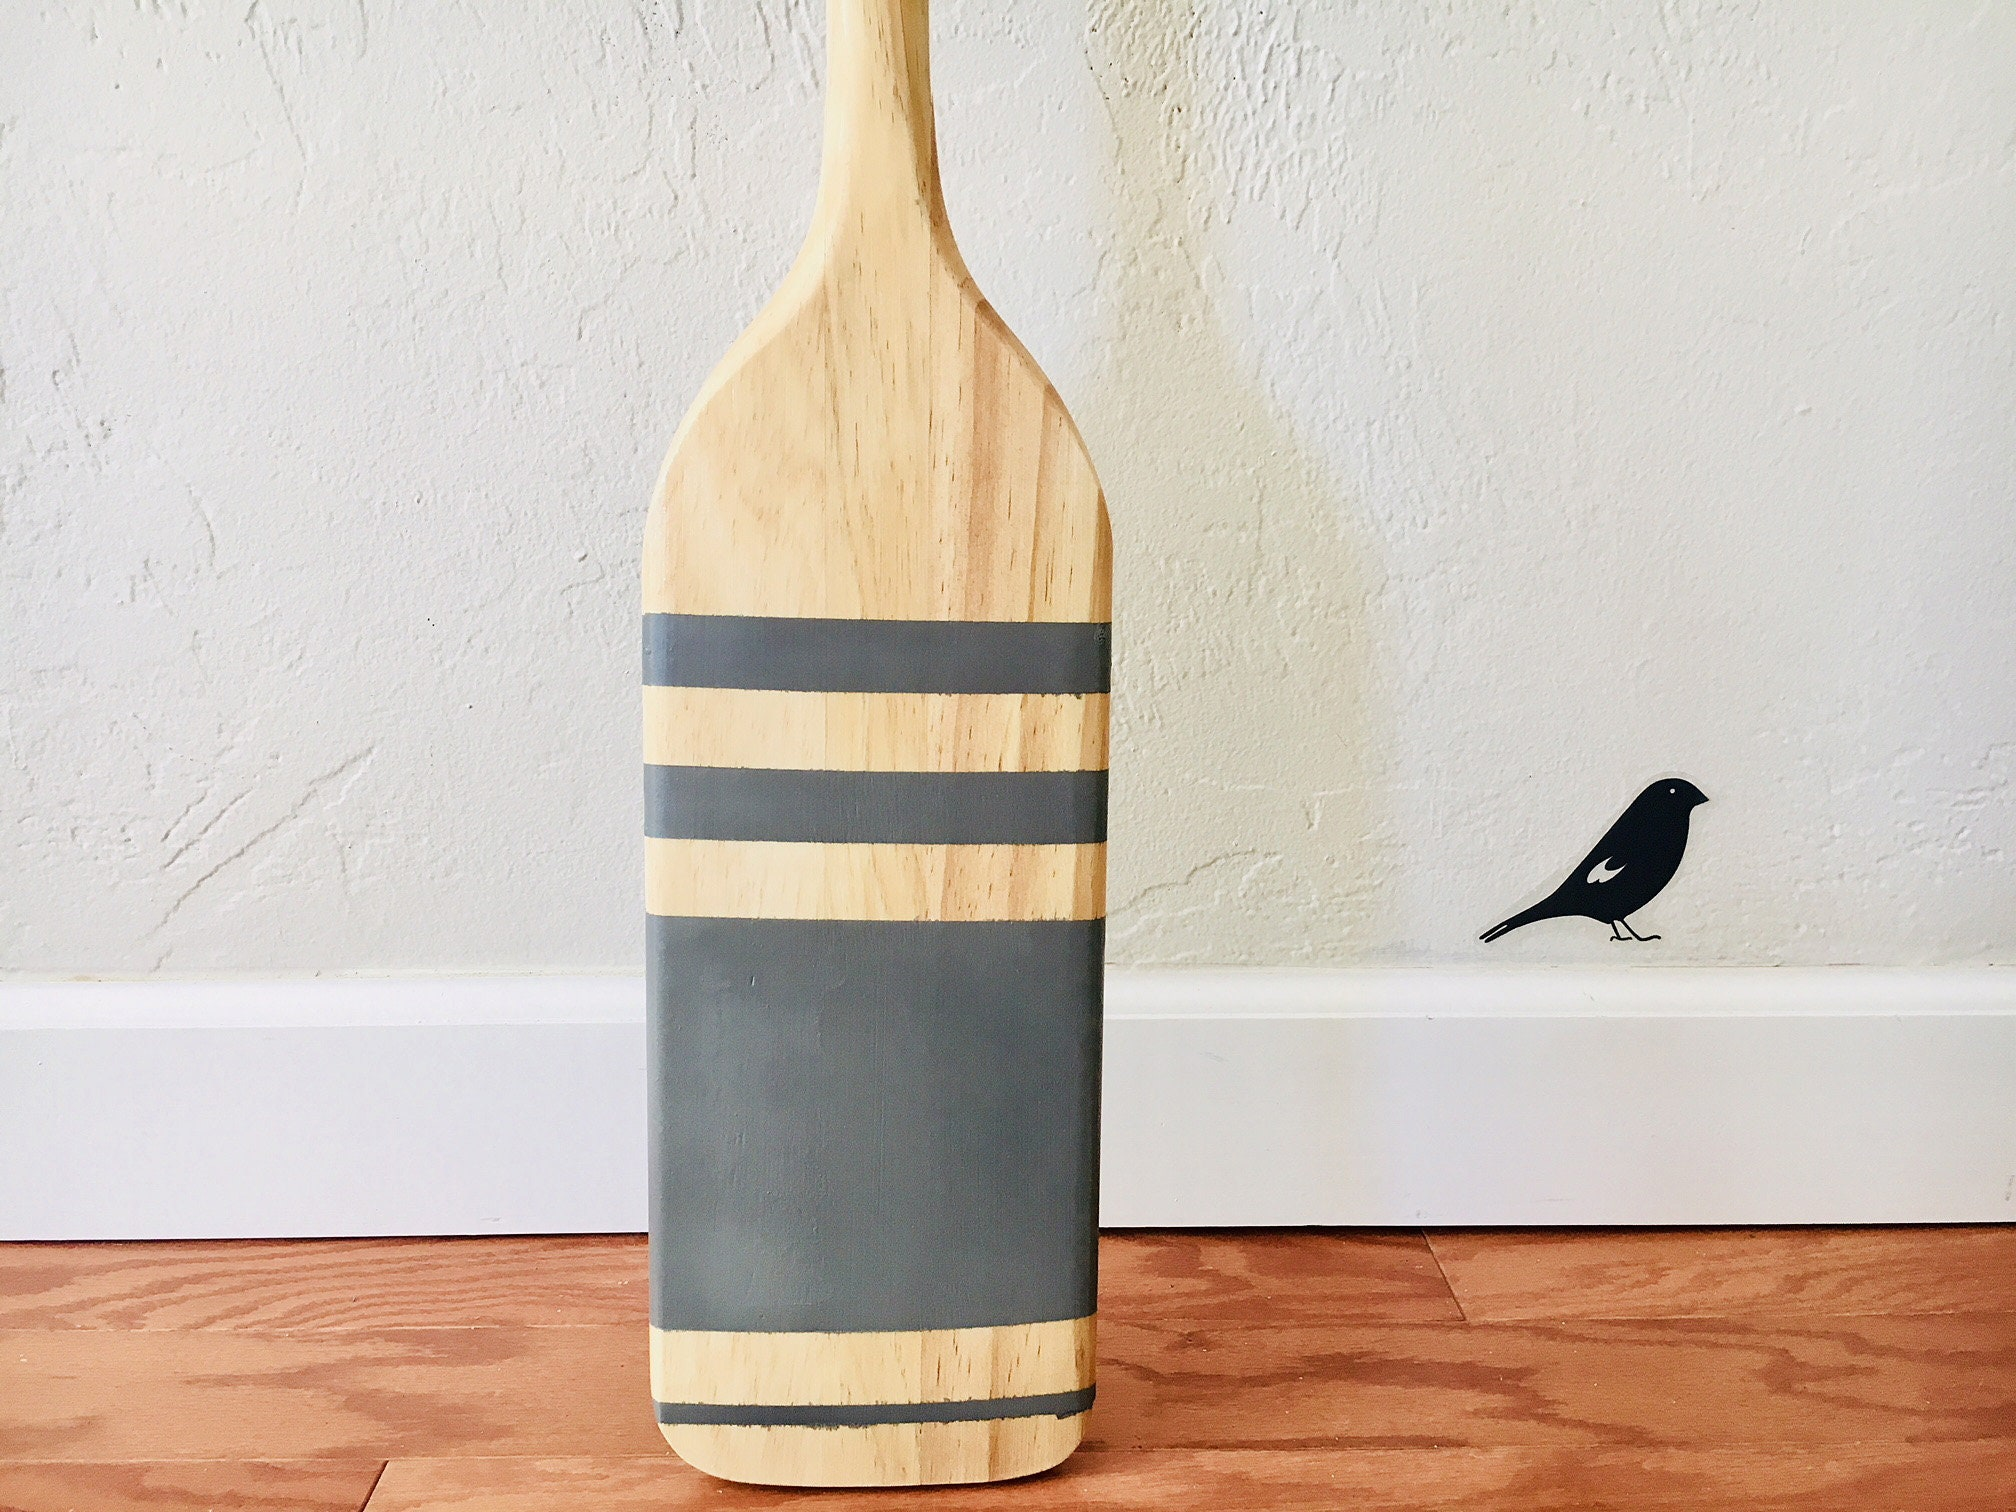 Gray Paddle Wood Nautical Beach Decor By Seastyle